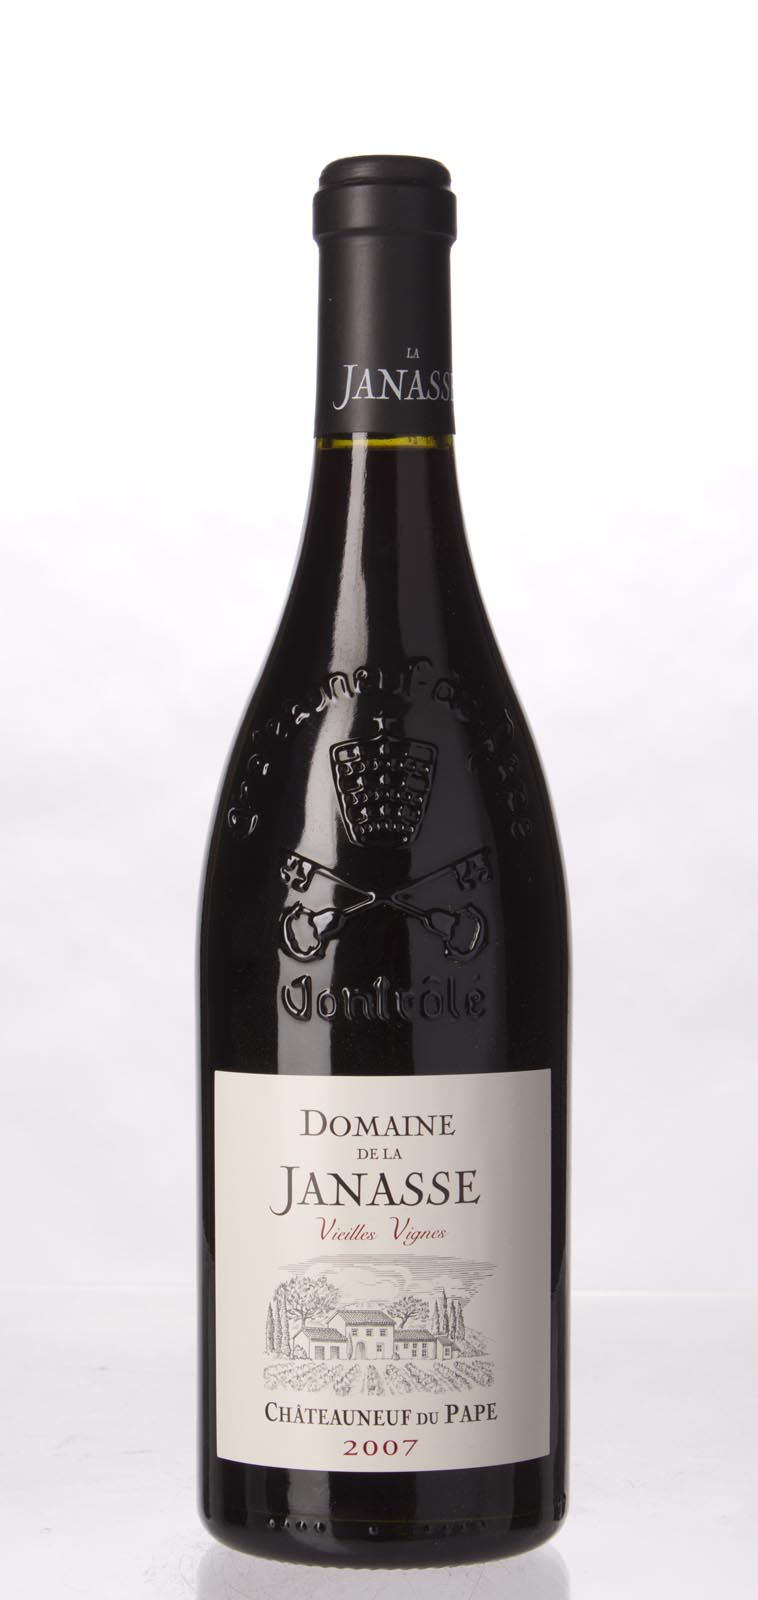 Domaine de la Janasse Chateauneuf du Pape Cuvee Vieilles Vignes 2007, 750mL (WA100) from The BPW - Merchants of rare and fine wines.